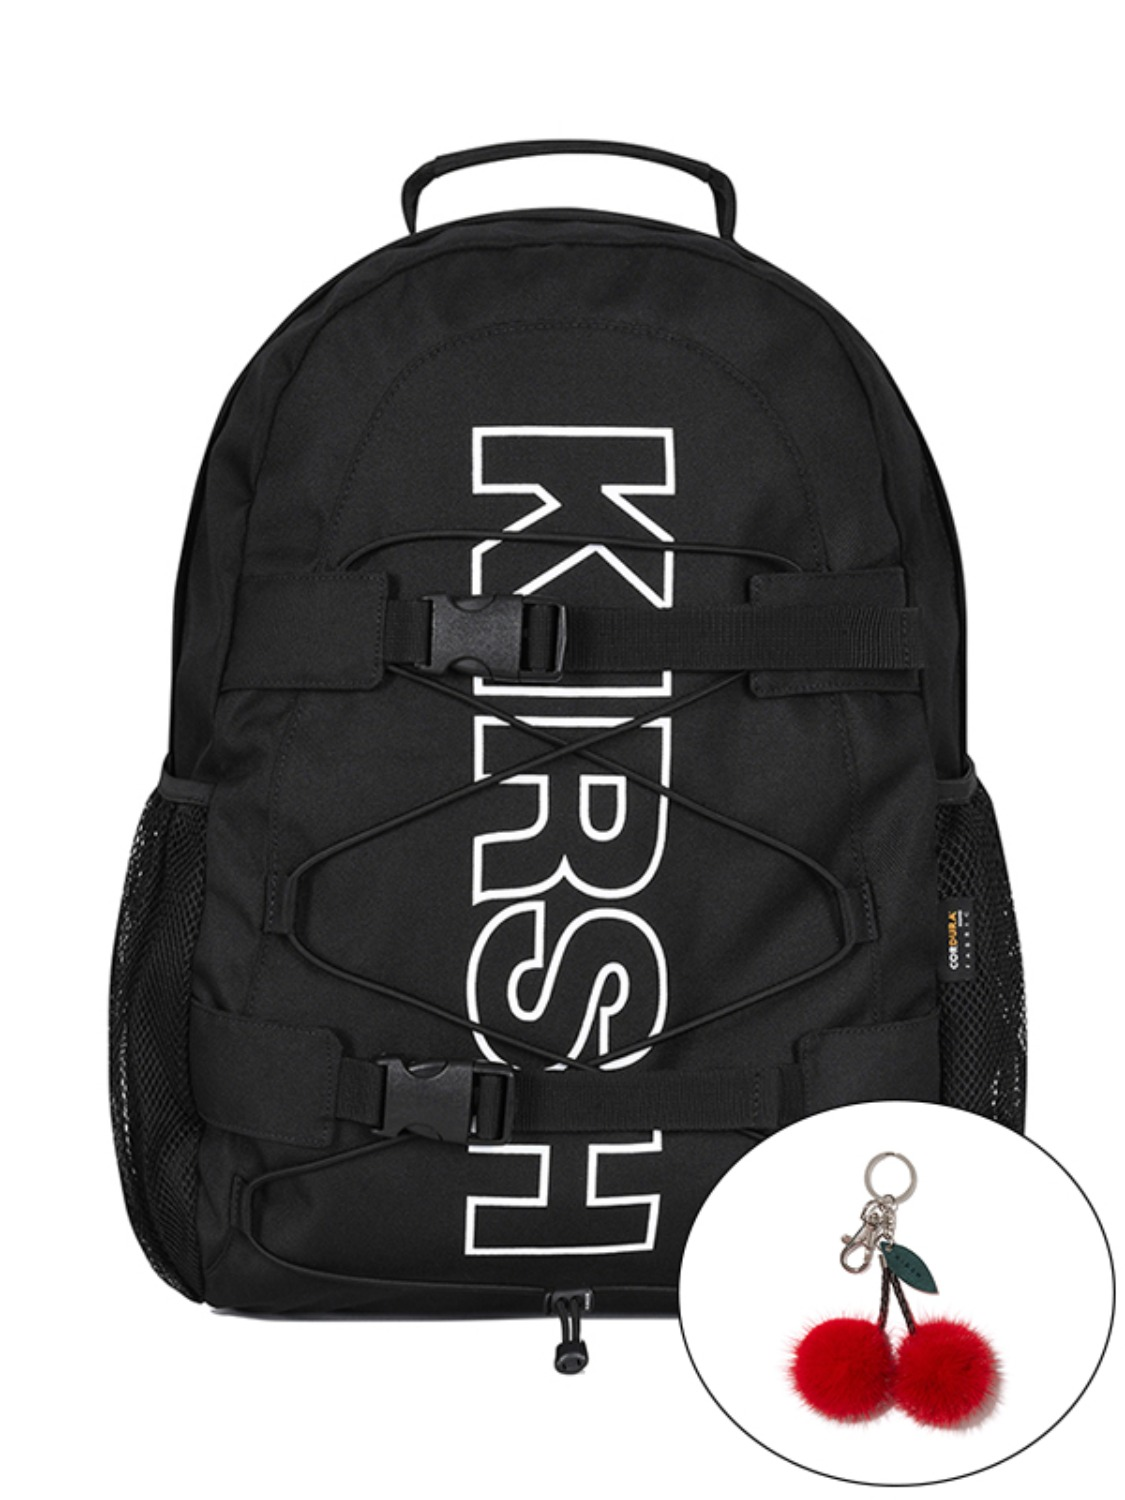 KIRSH POCKET LOGO SPORTS BACKPACK KS [BLACK]